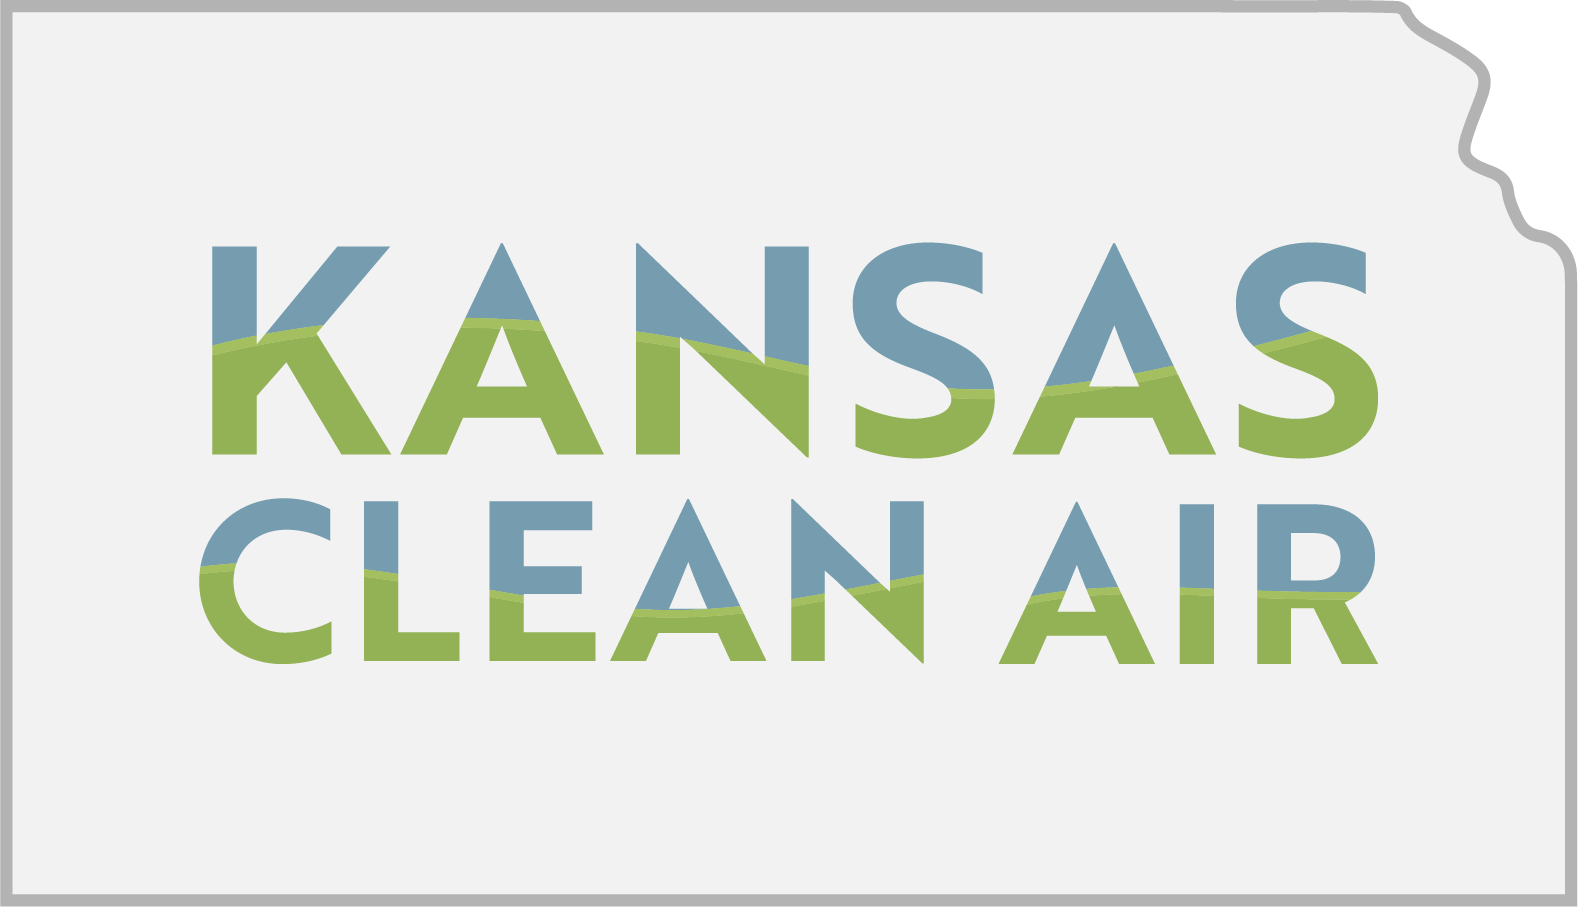 Kansas Clean Air